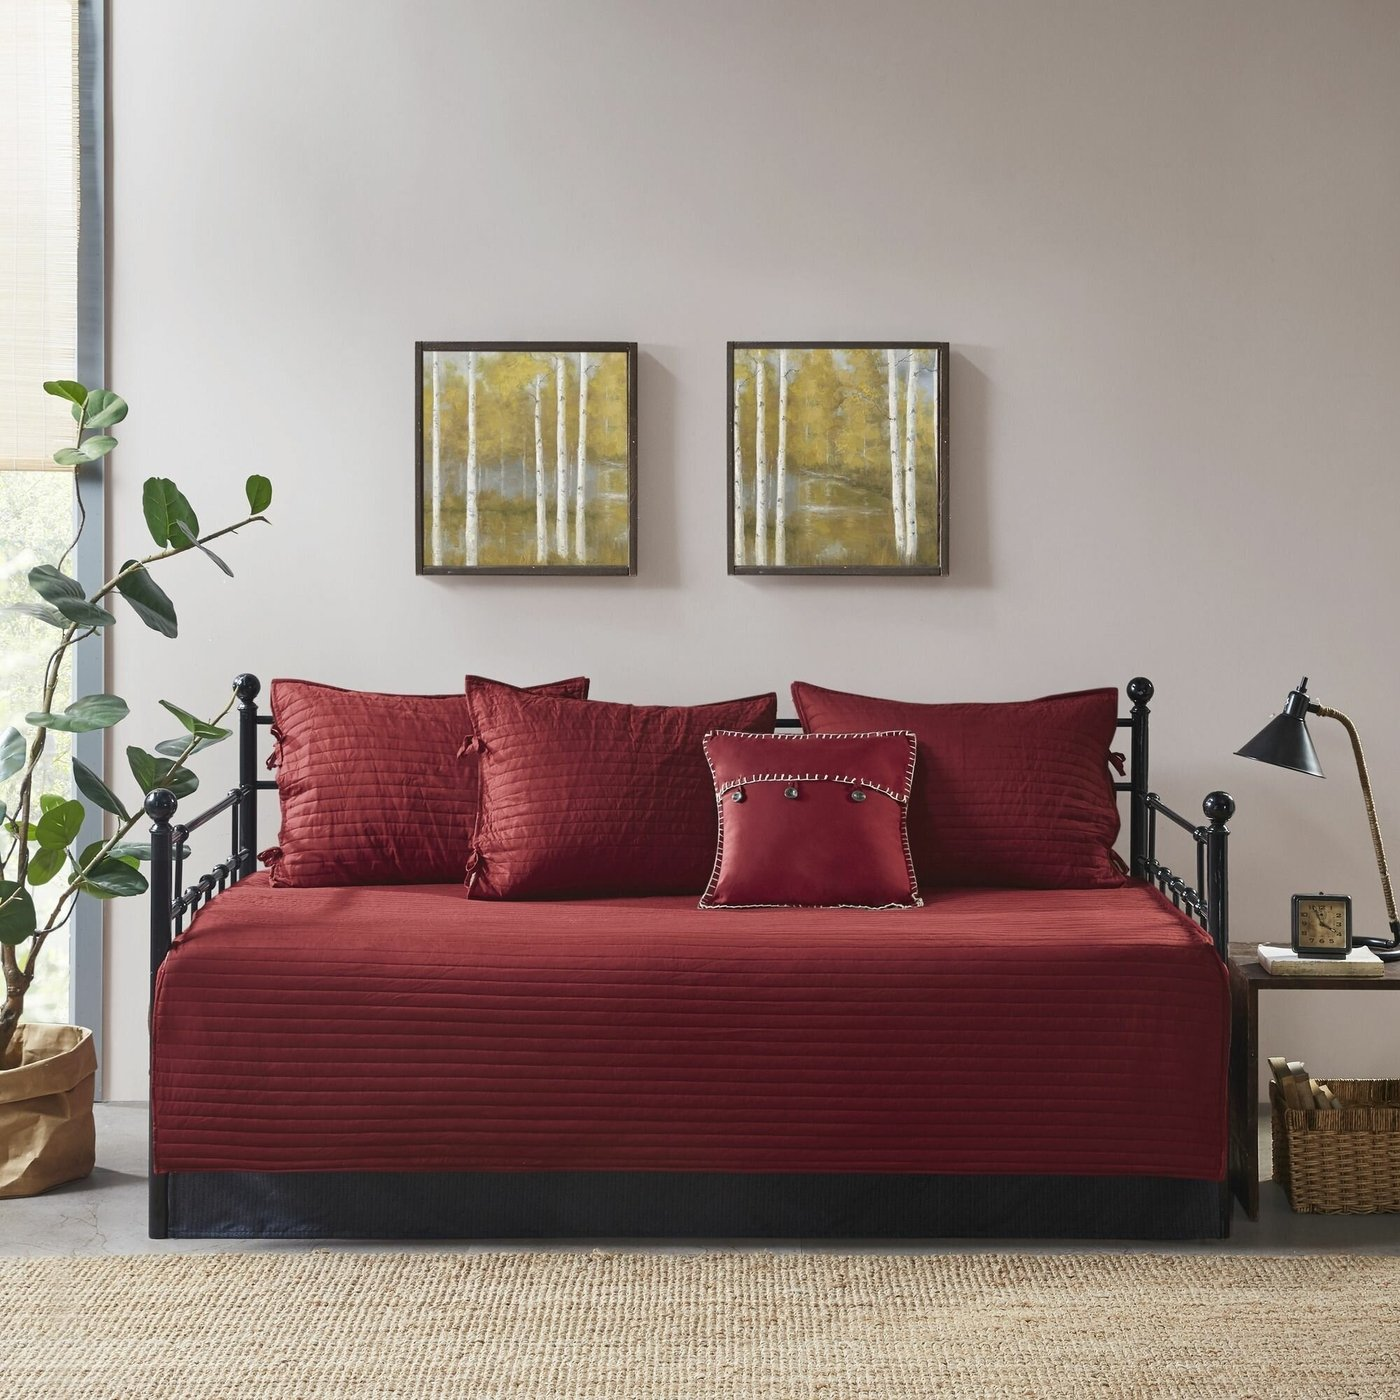 How To Choose Daybed Covers & Sets - Foter